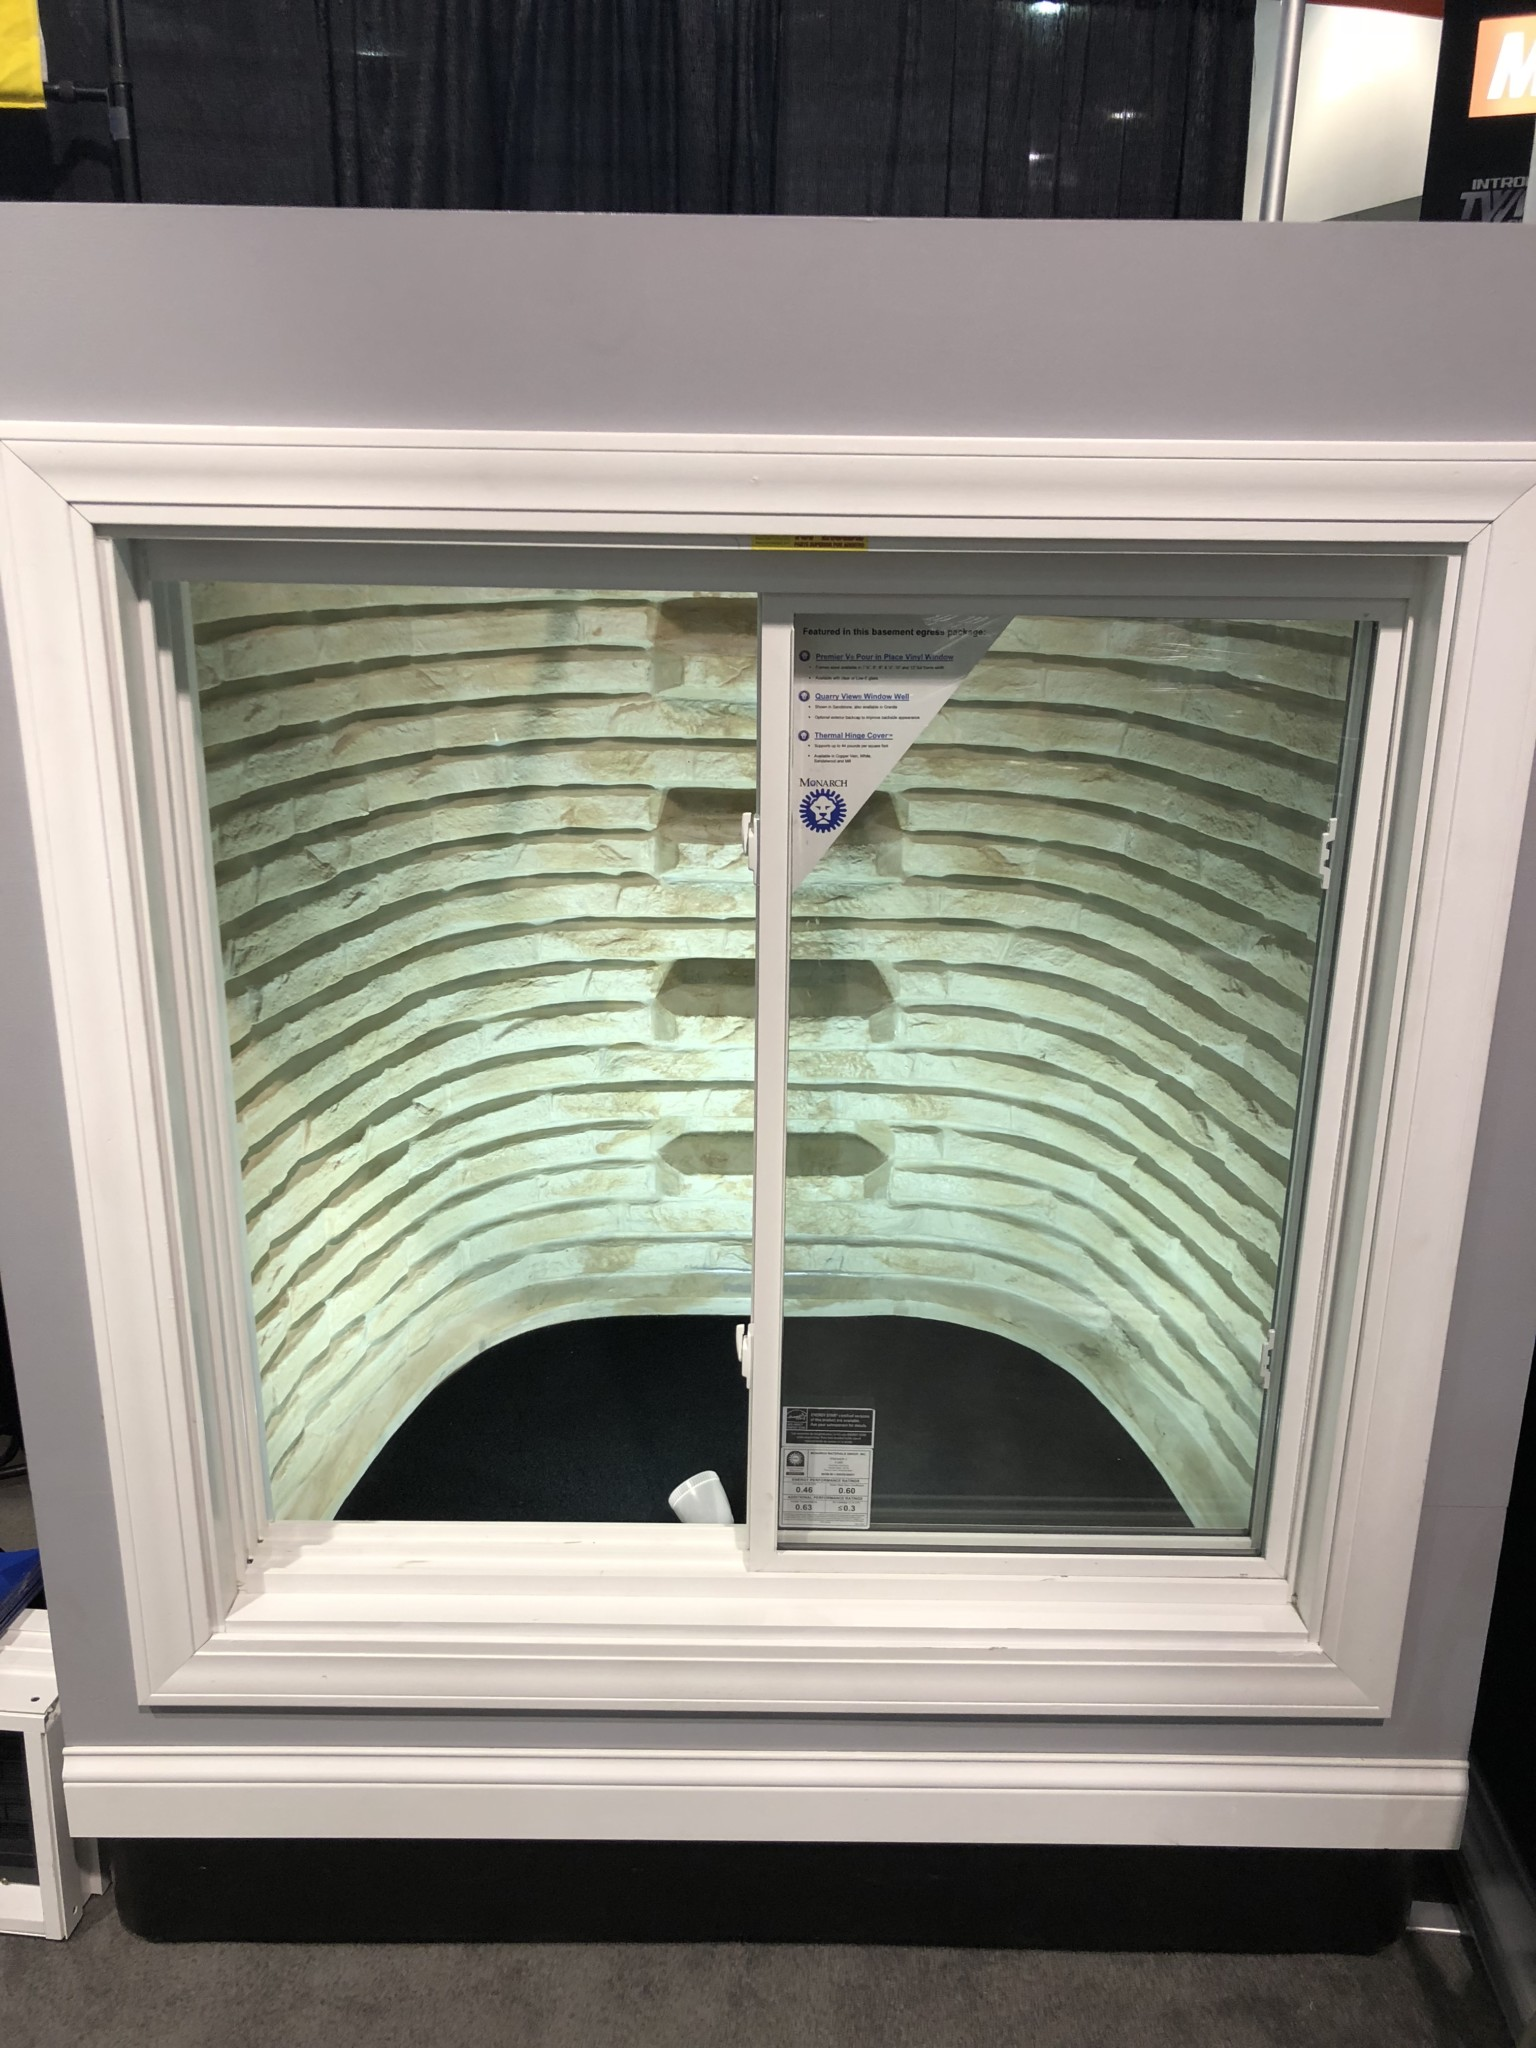 Egress windows select basement waterproofing new jersey for Bedroom window egress requirements